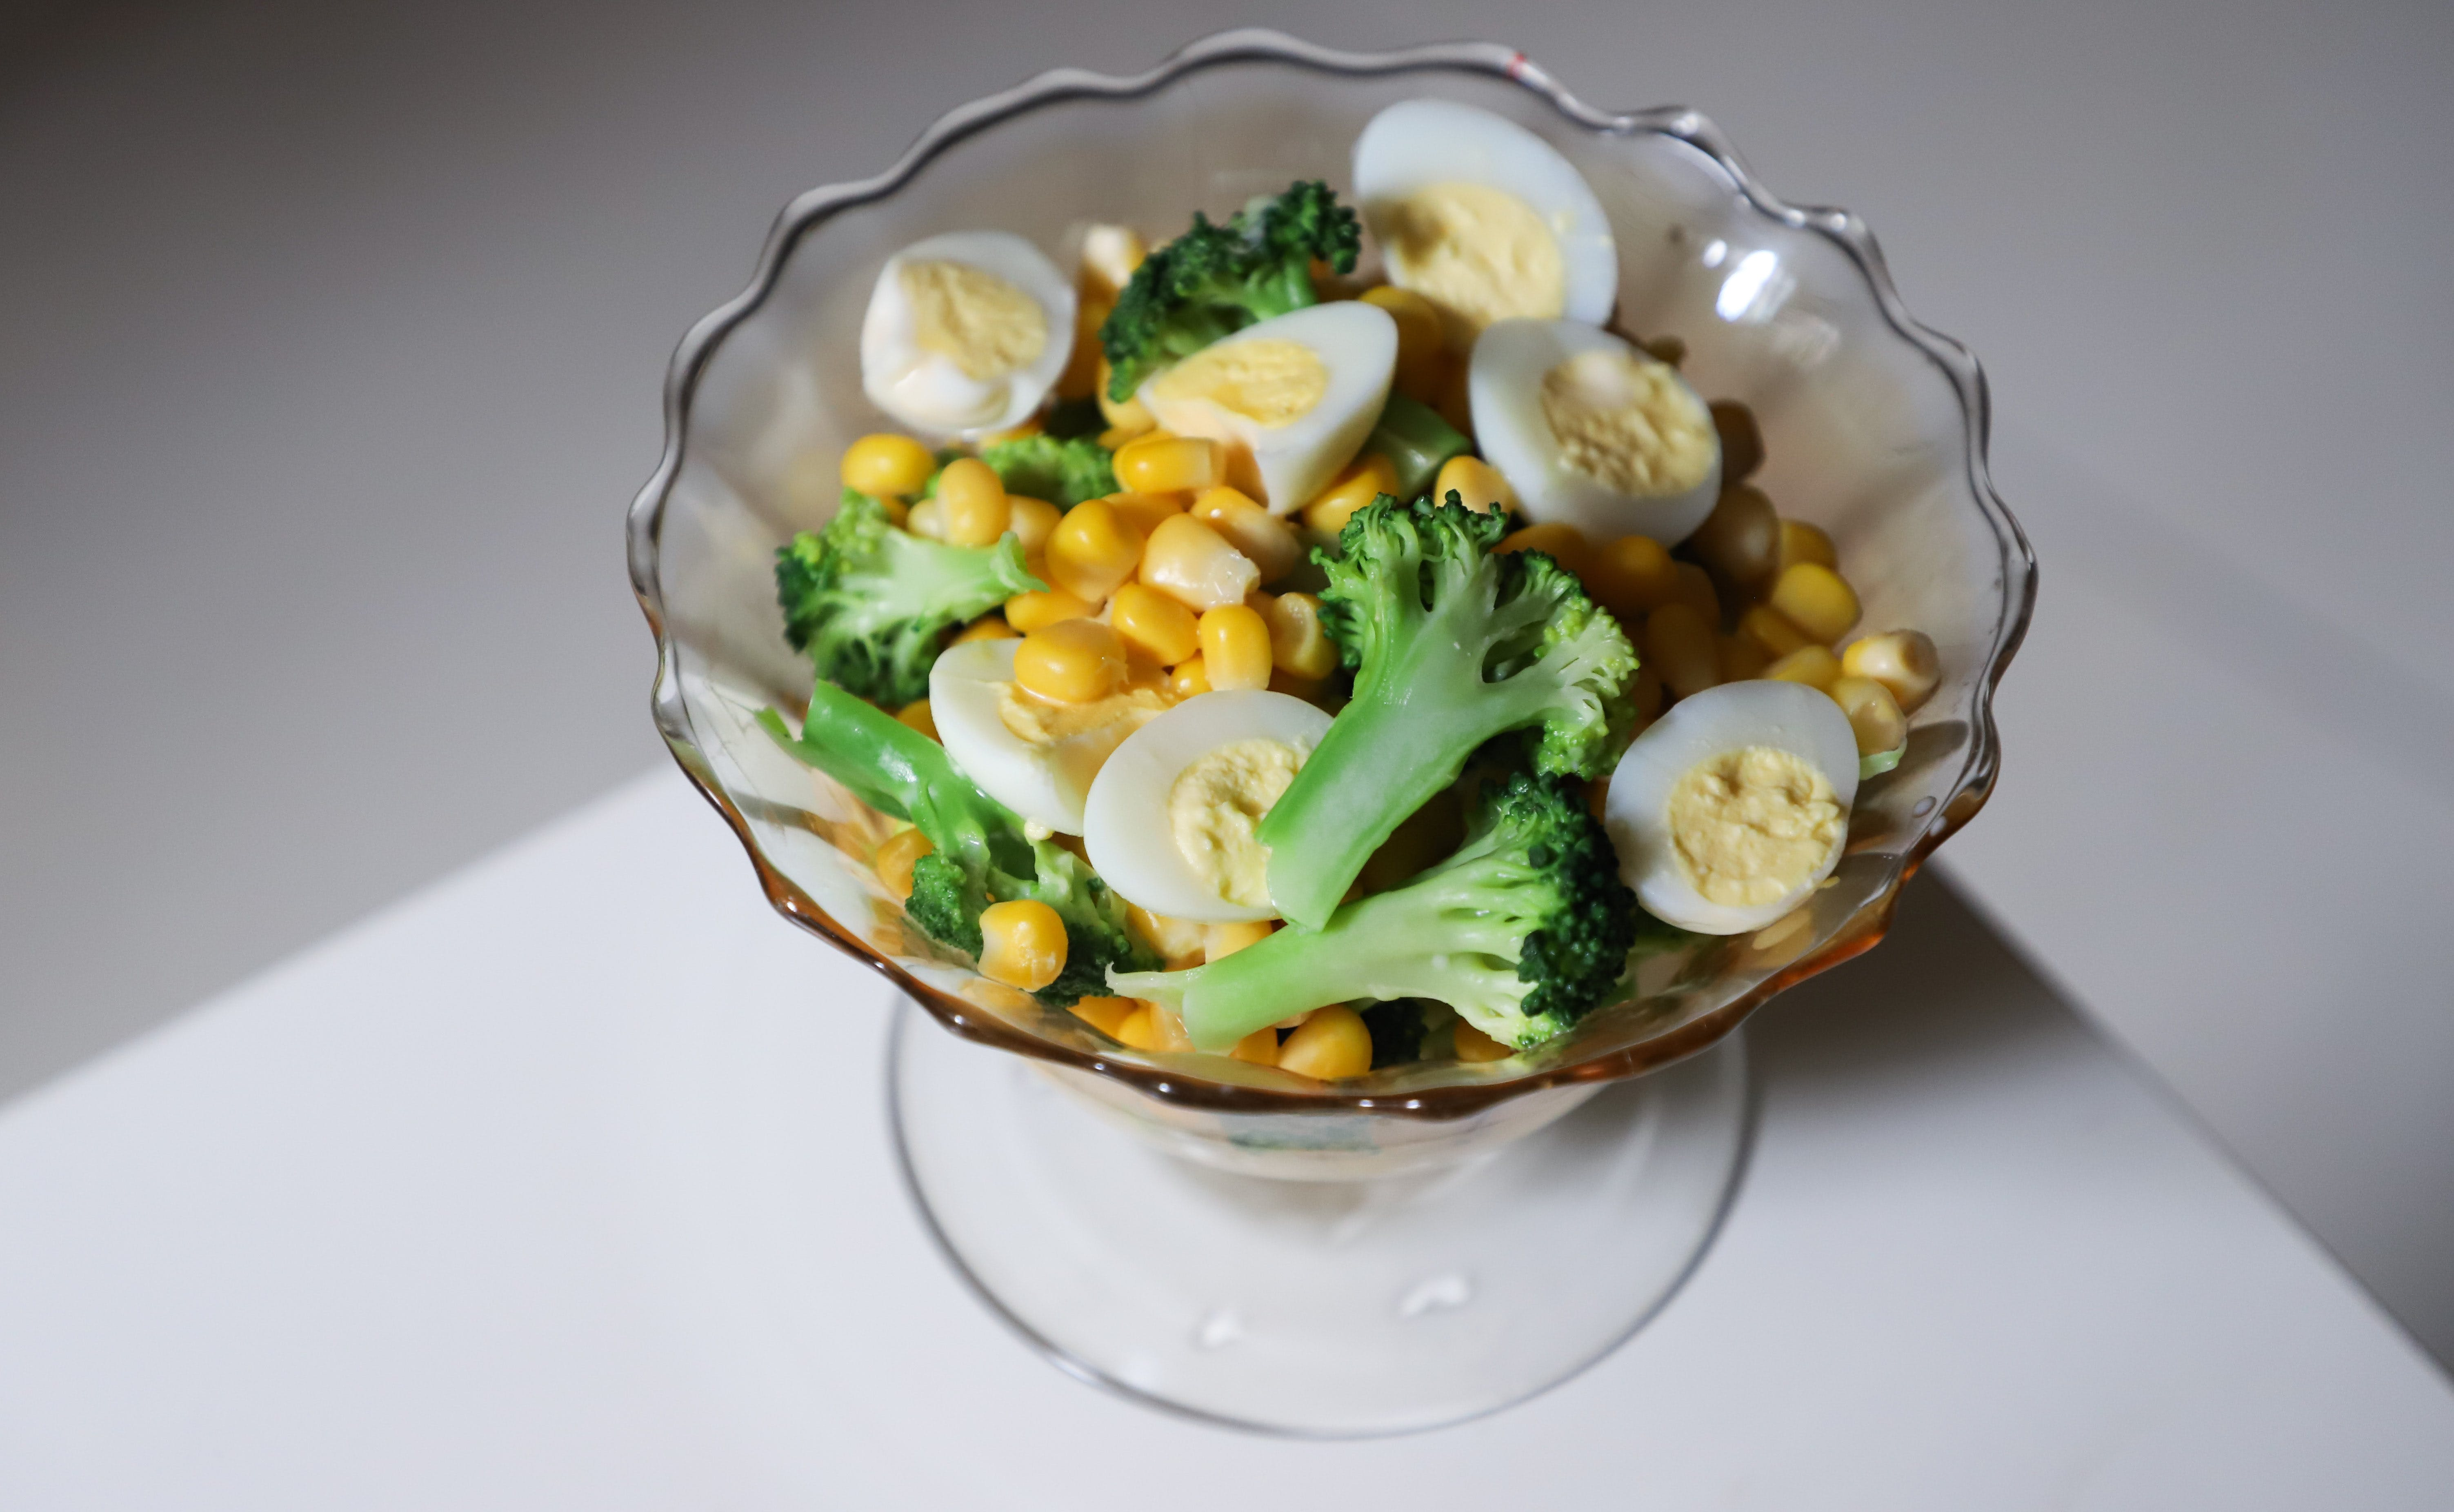 Sliced Broccoli, Corn, And Eggs